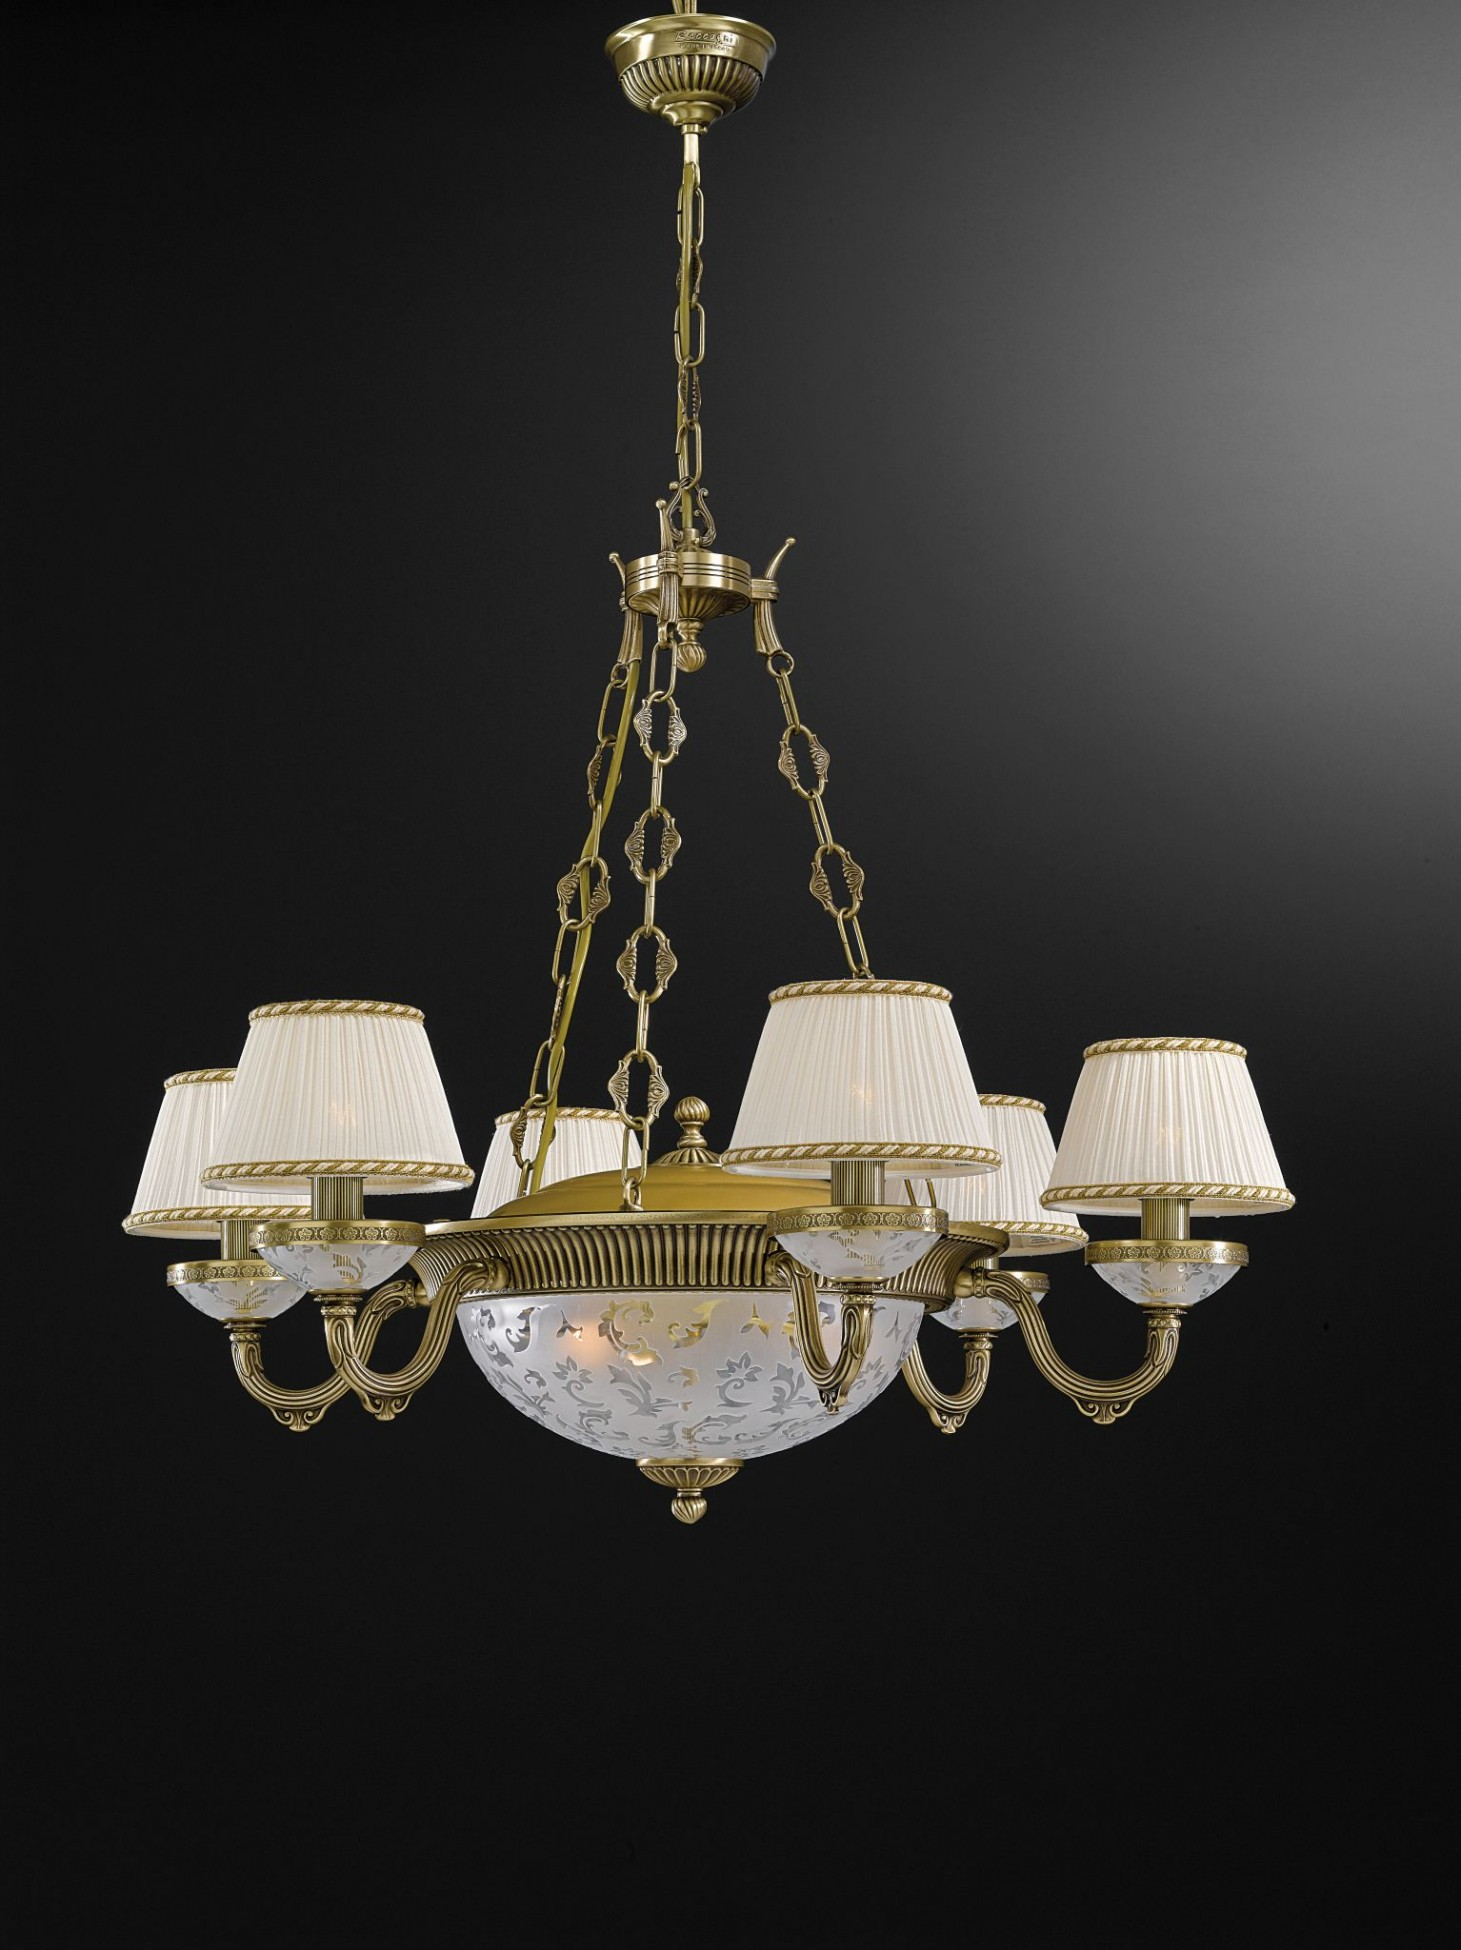 9 lights brass and frosted glass chandelier with lamp shades reccagni store - Lights and chandeliers ...